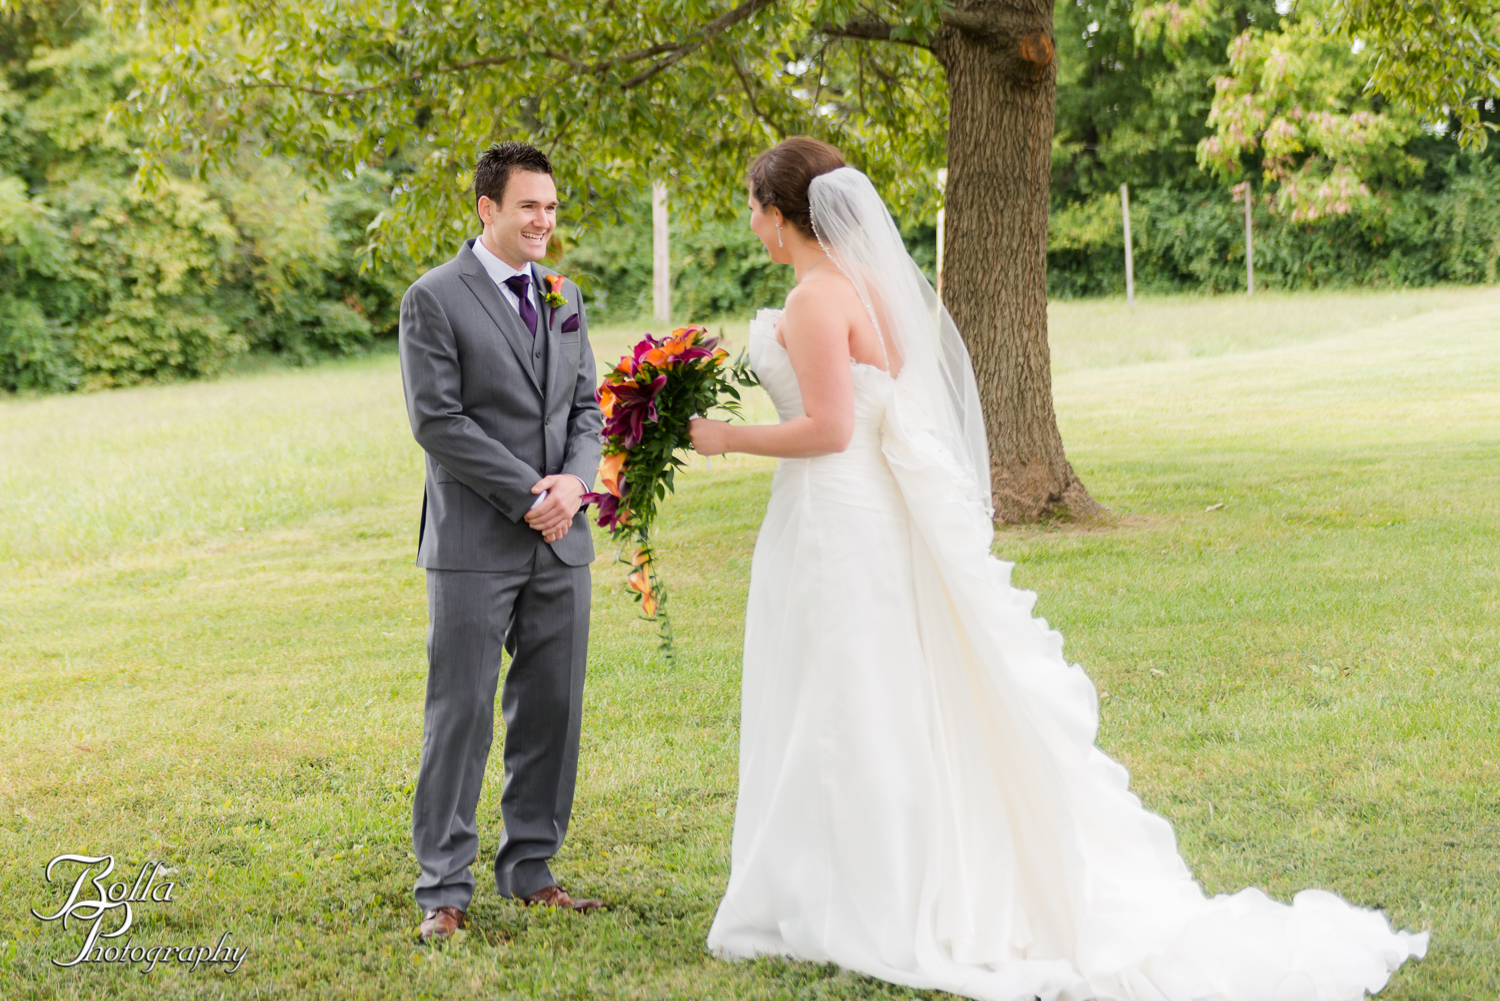 Bolla_Photography_St_Louis_wedding_photographer-0073.jpg